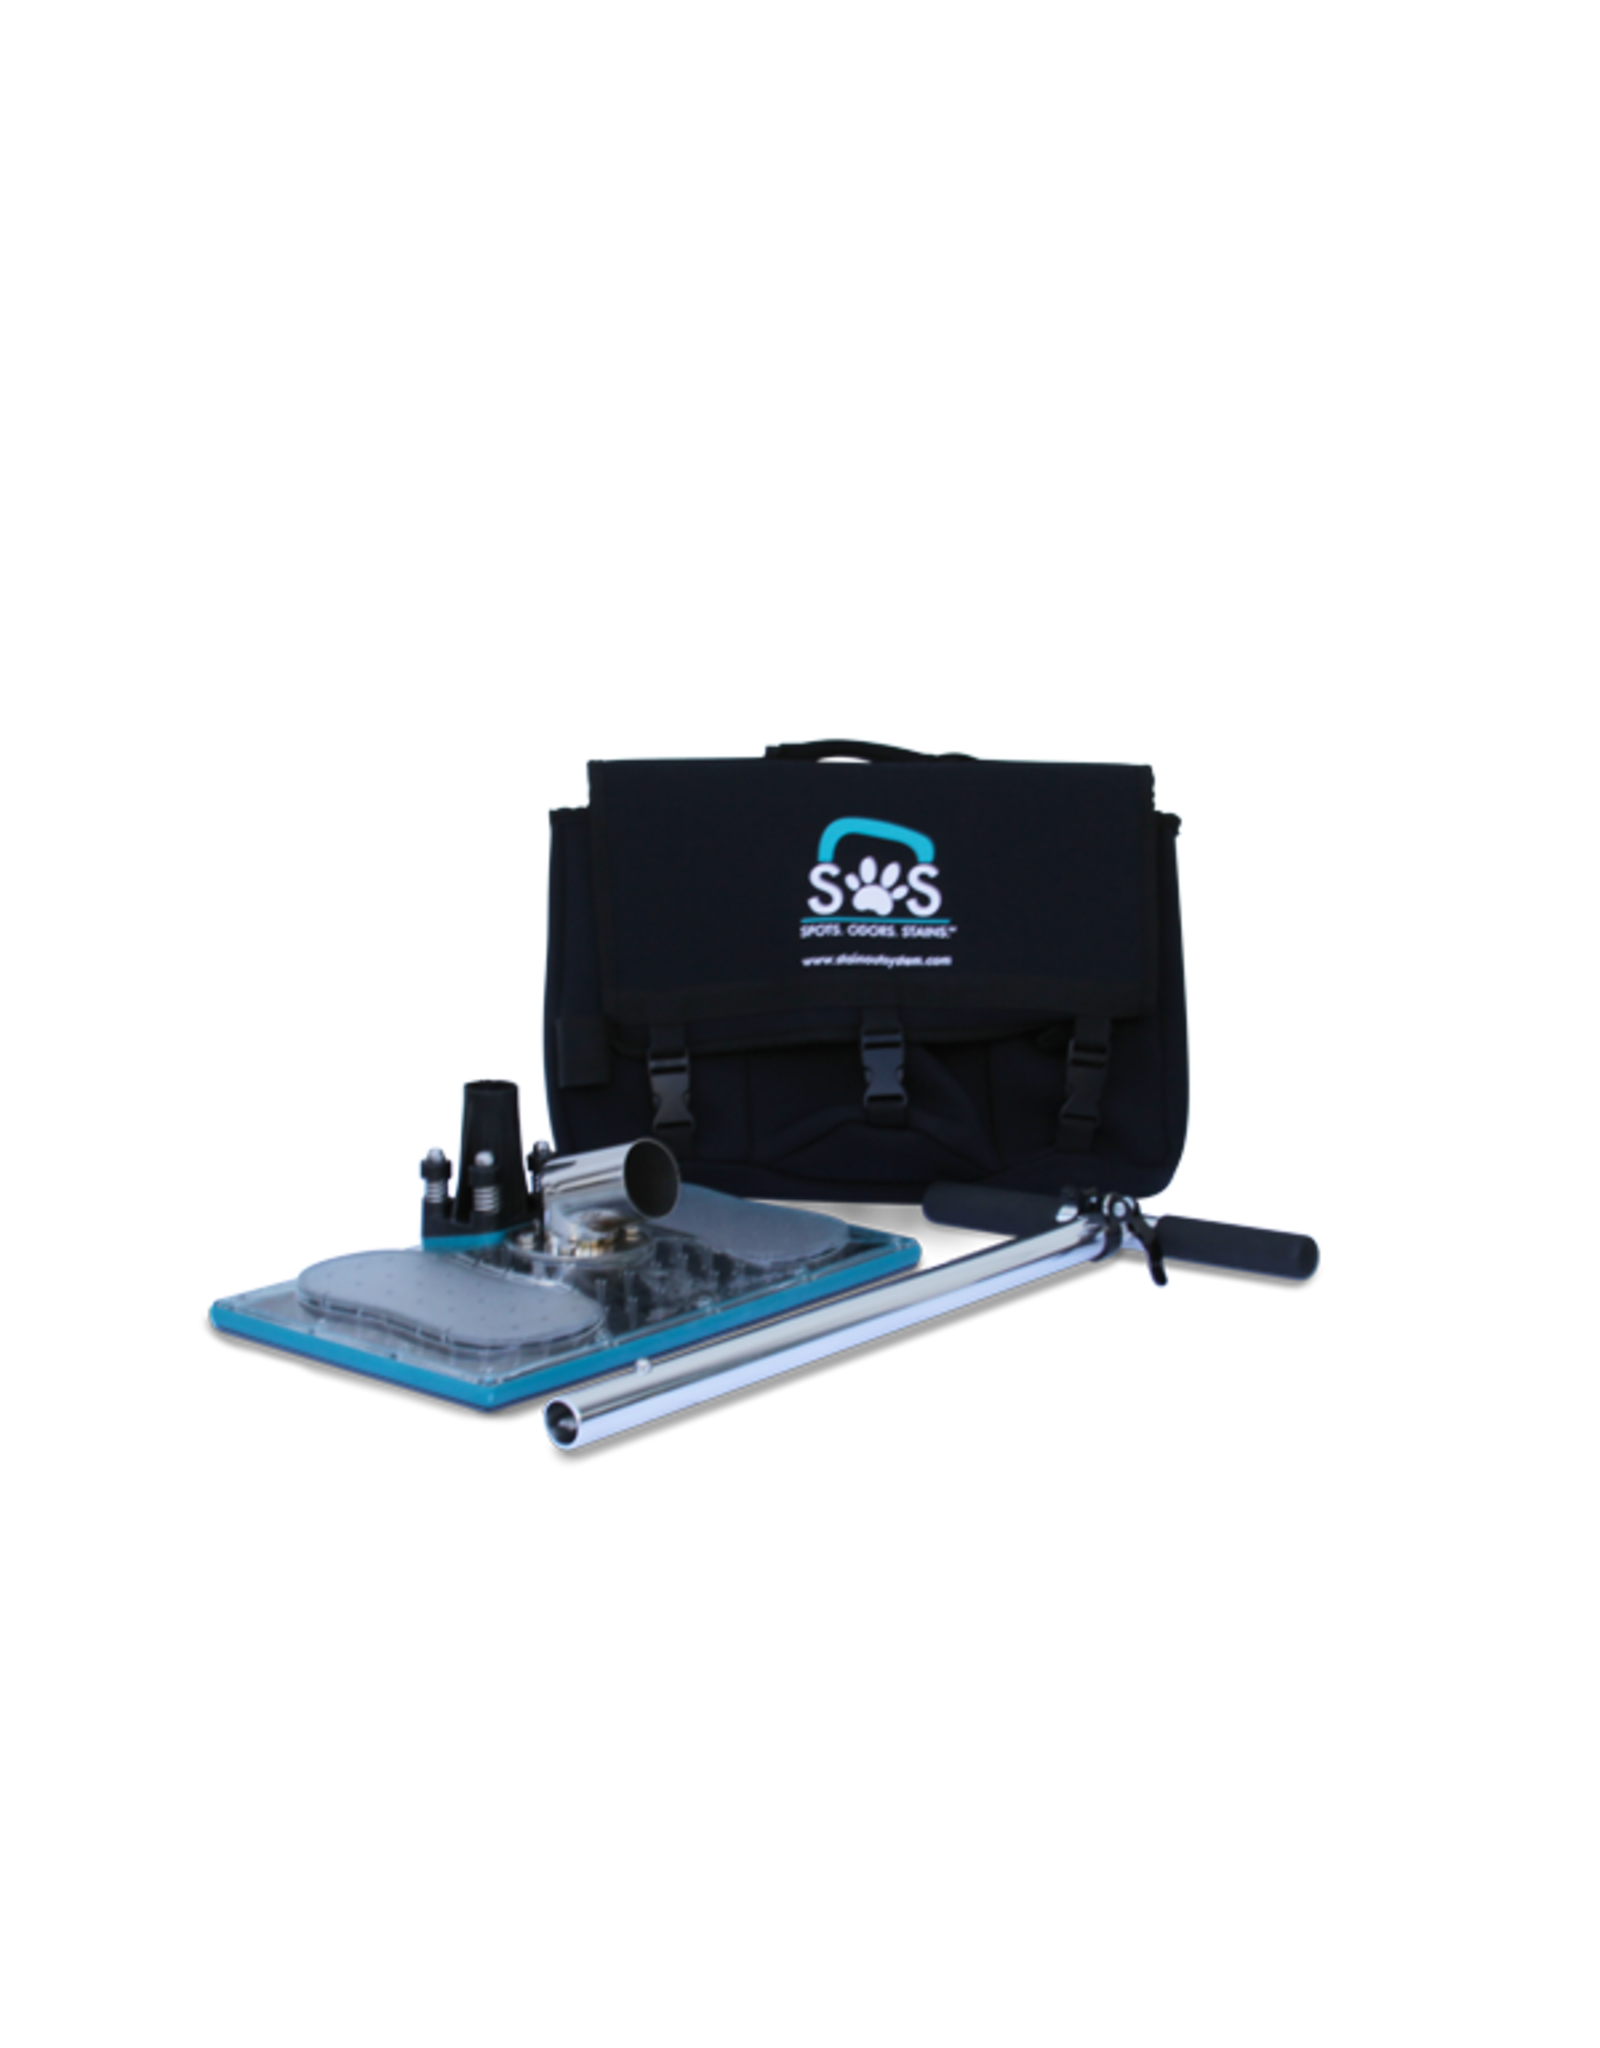 SOS PRO Sub Surface Extraction Tool by StainOut System